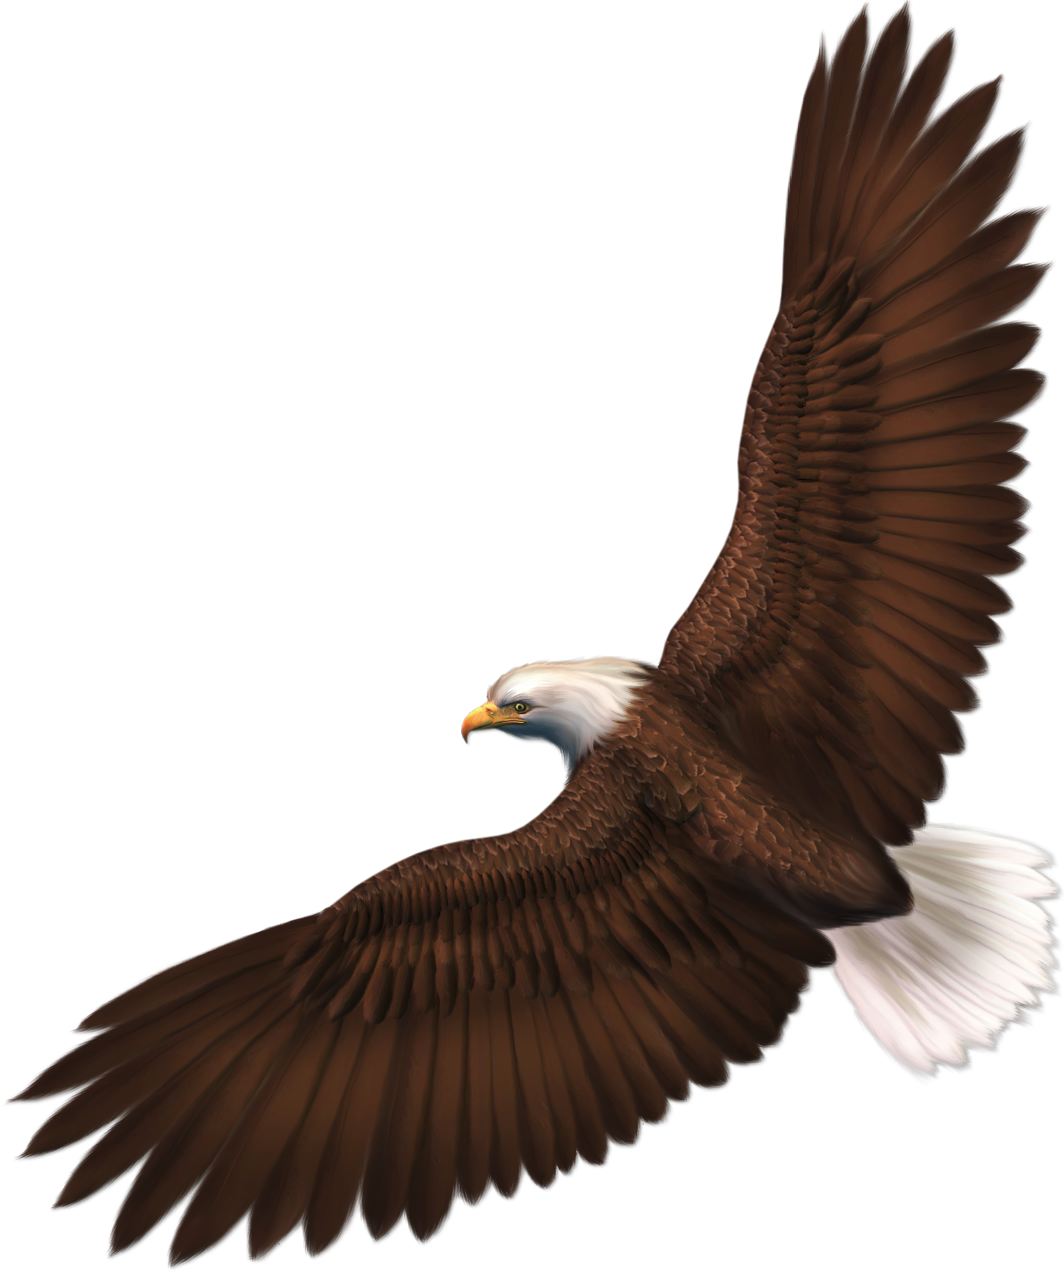 Eagle Transparent Image 19054